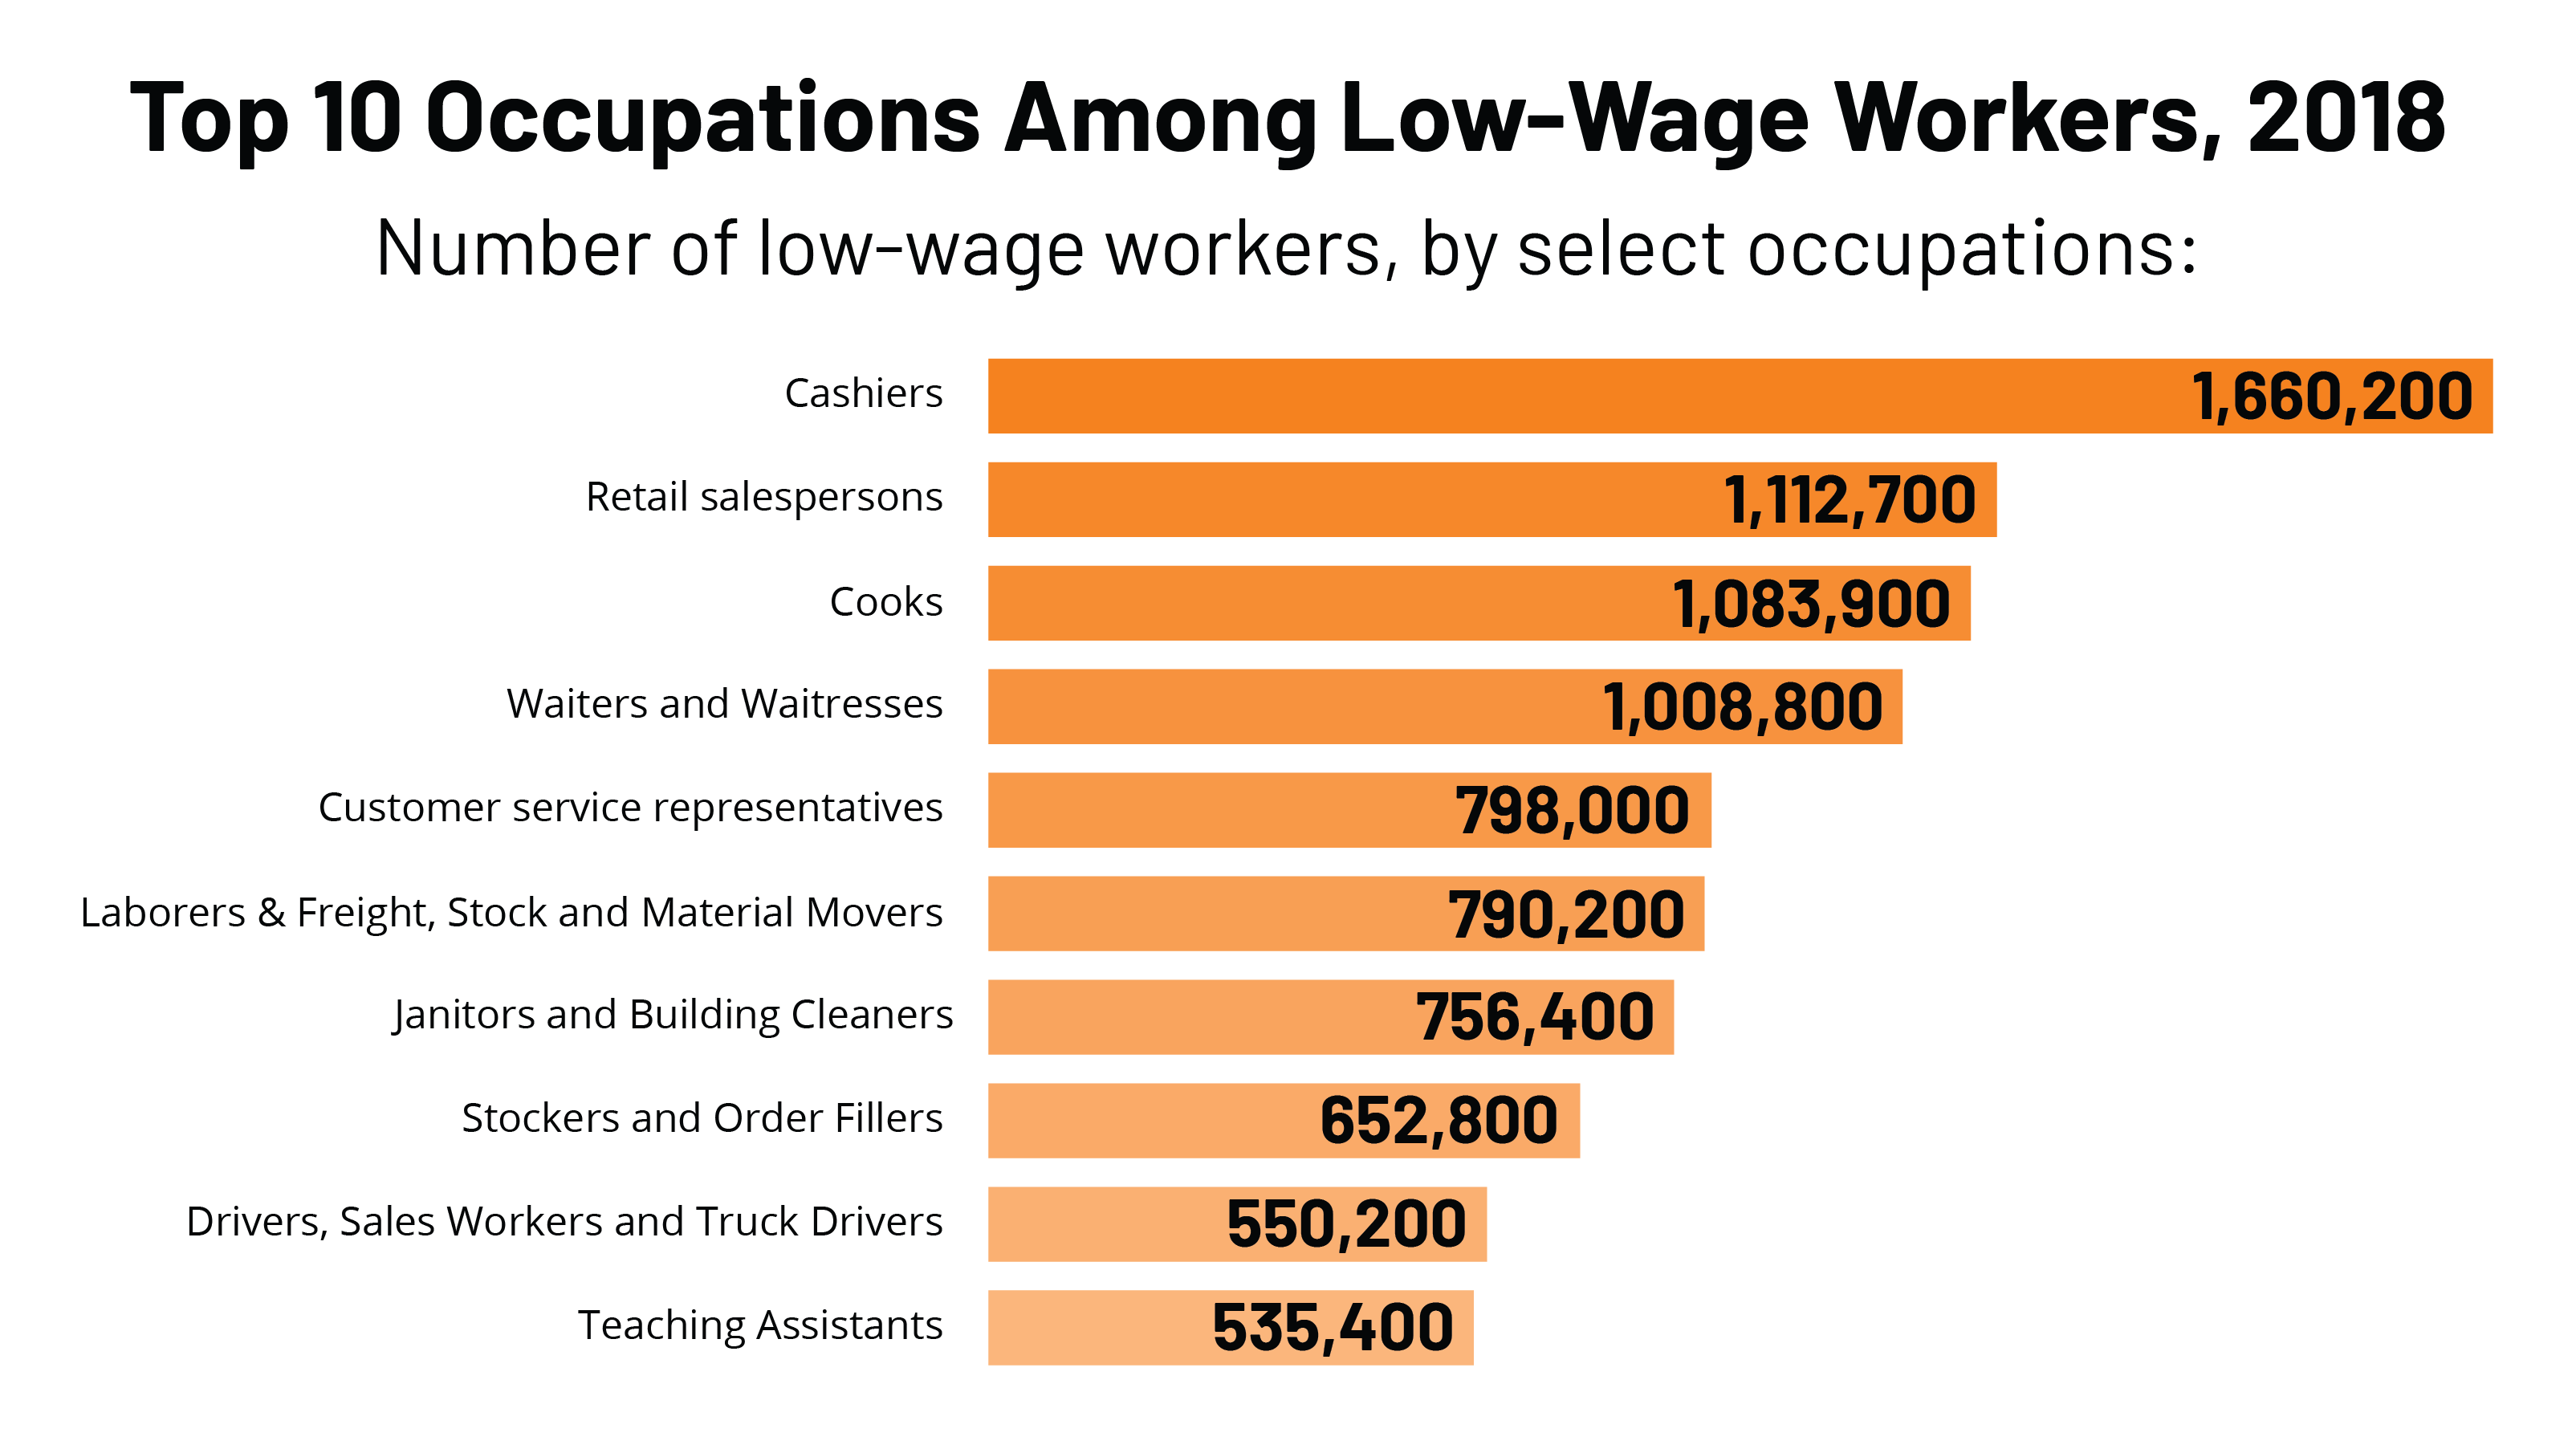 Top 10 Occupations Among Low Wage Workers